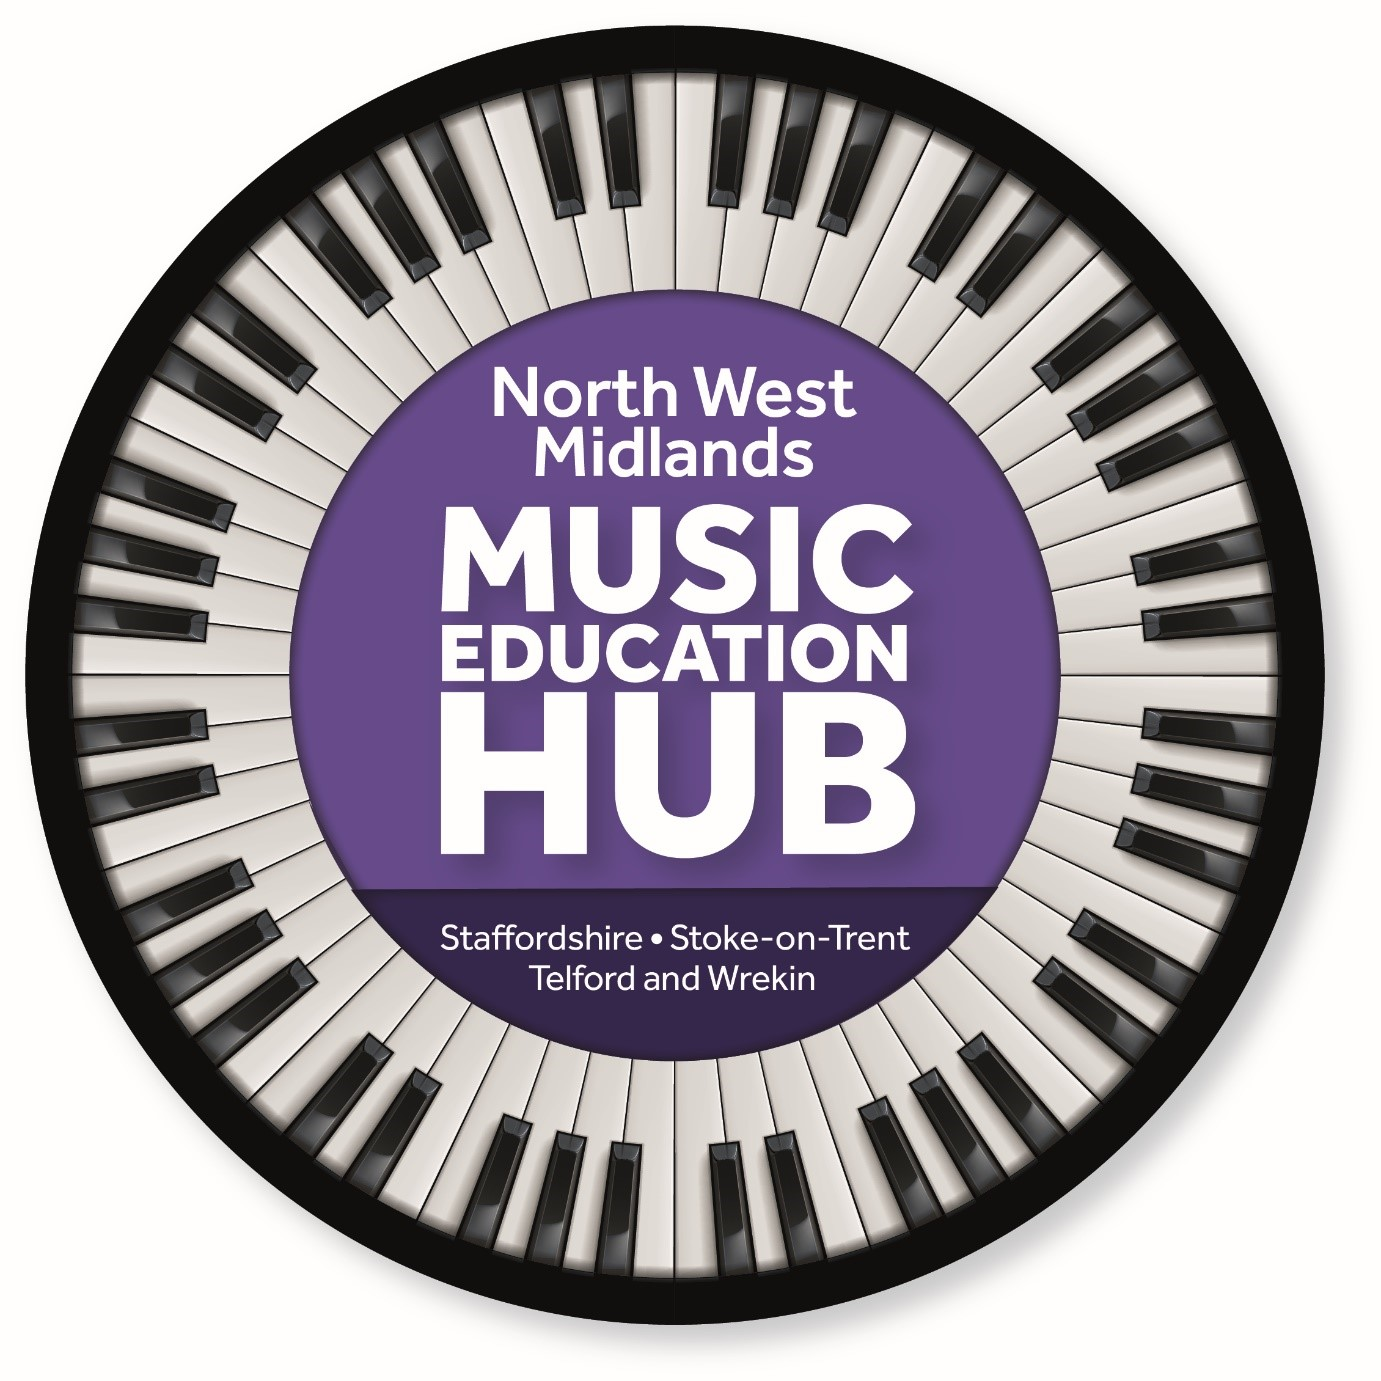 North West Midlands Music Education Hub